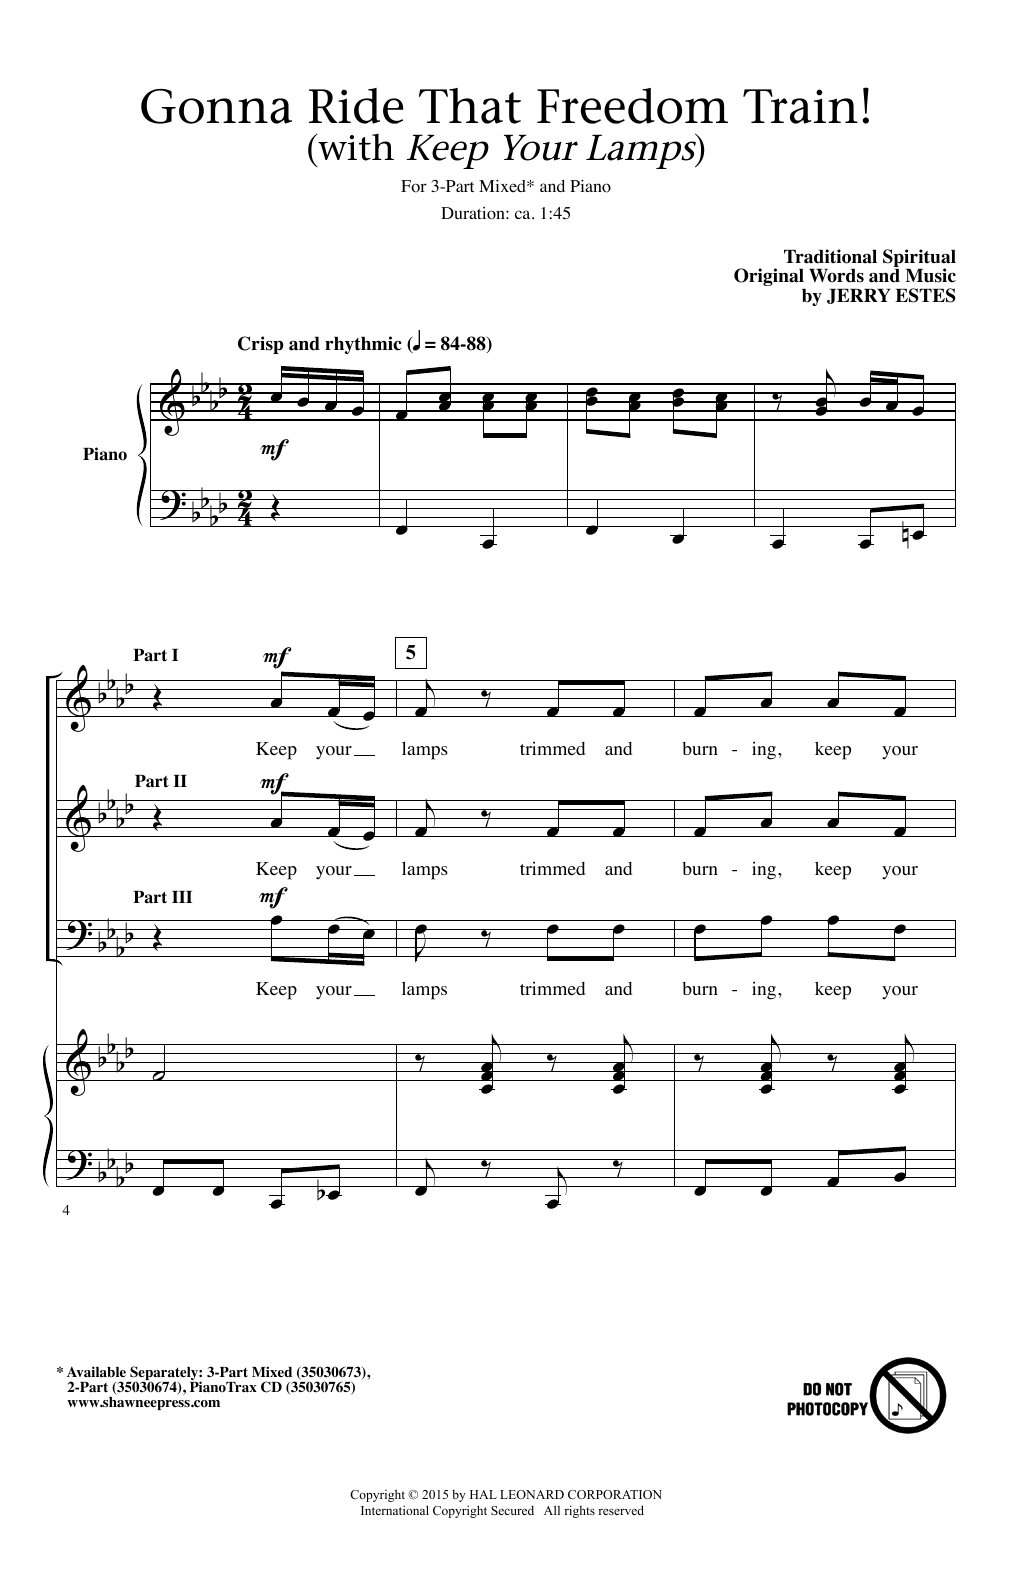 Gonna Ride That Freedom Train! (With Keep Your Lamps) Sheet Music